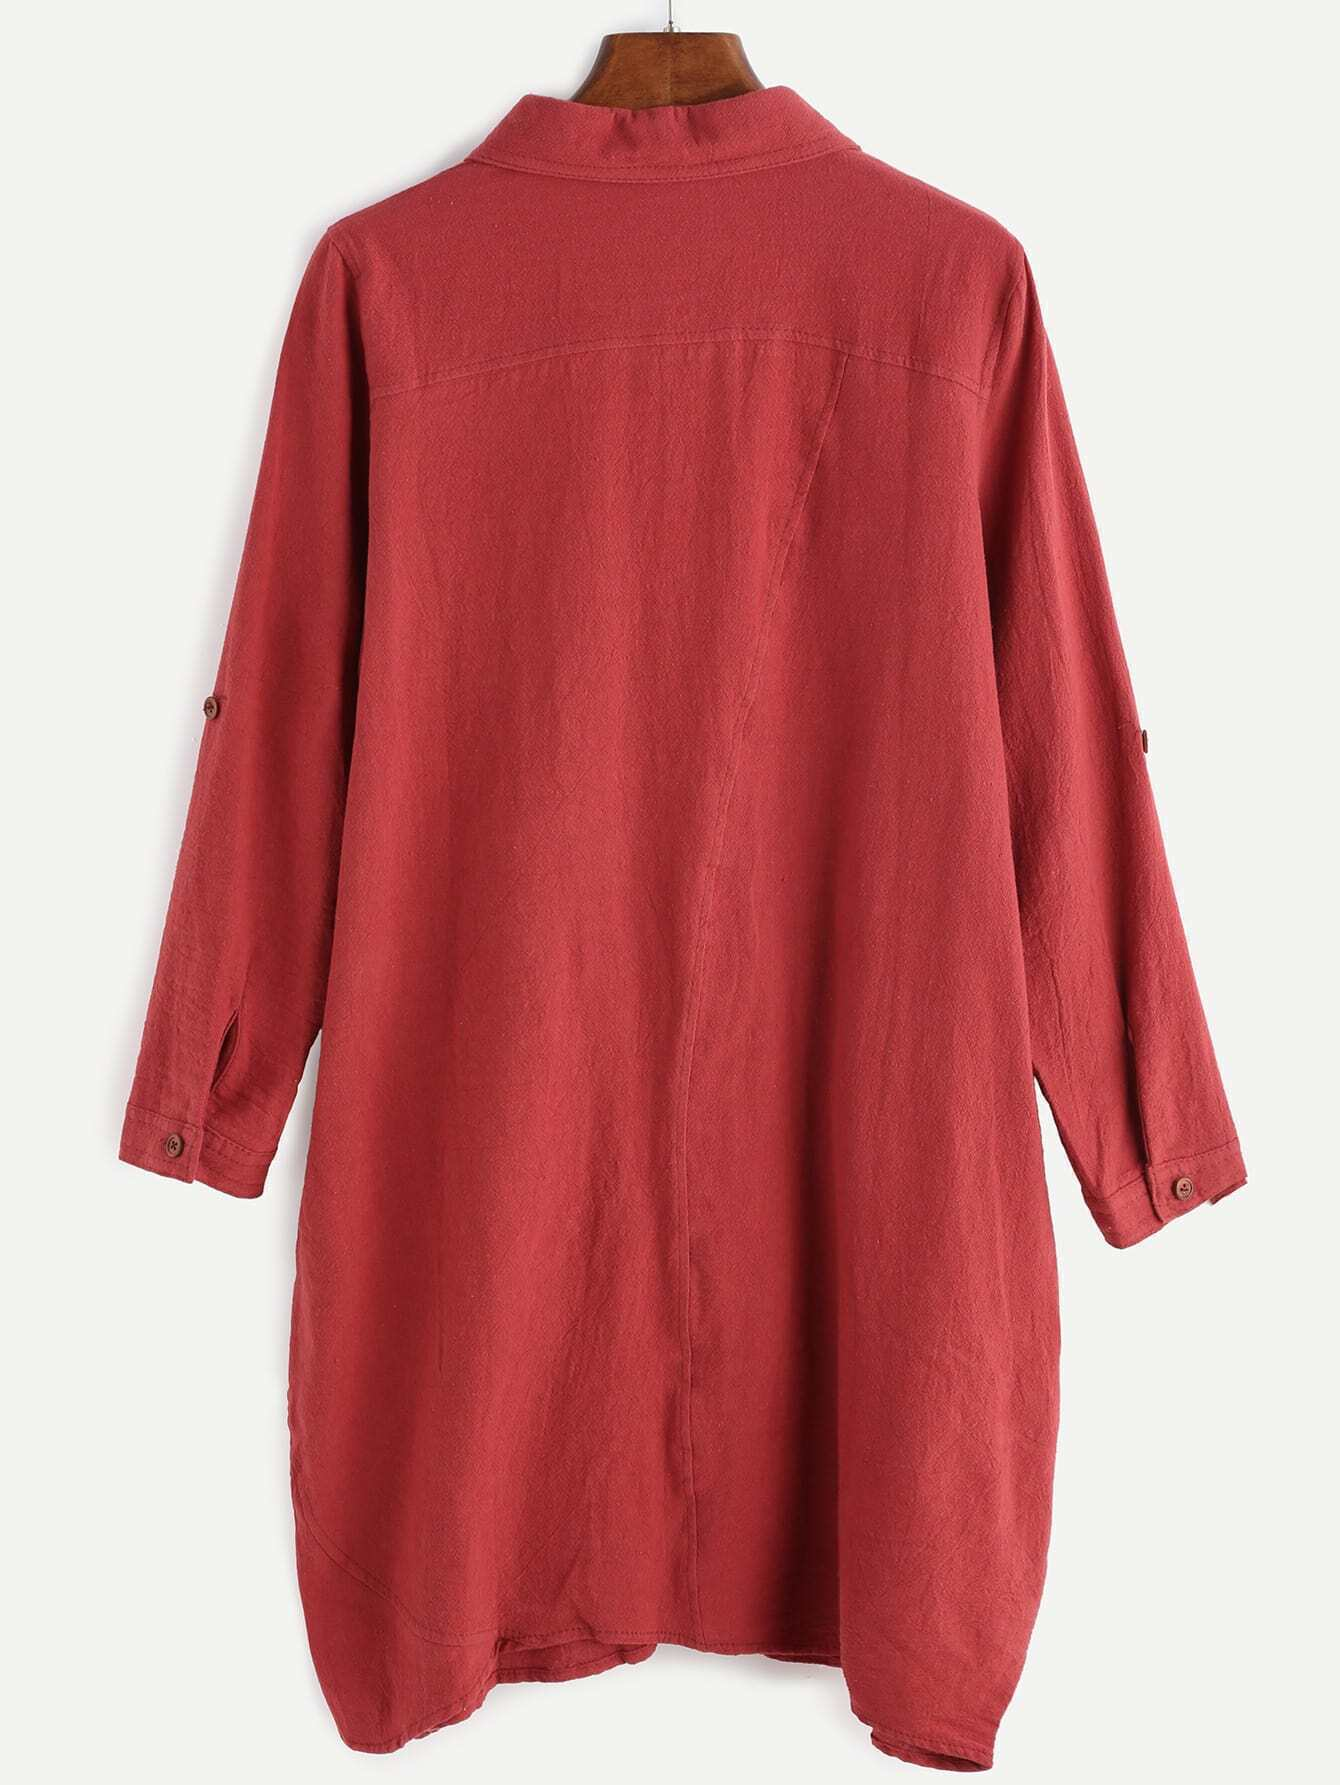 Robe chemise manche longue avec poches rouge french romwe for Interieur paupiere inferieure rouge